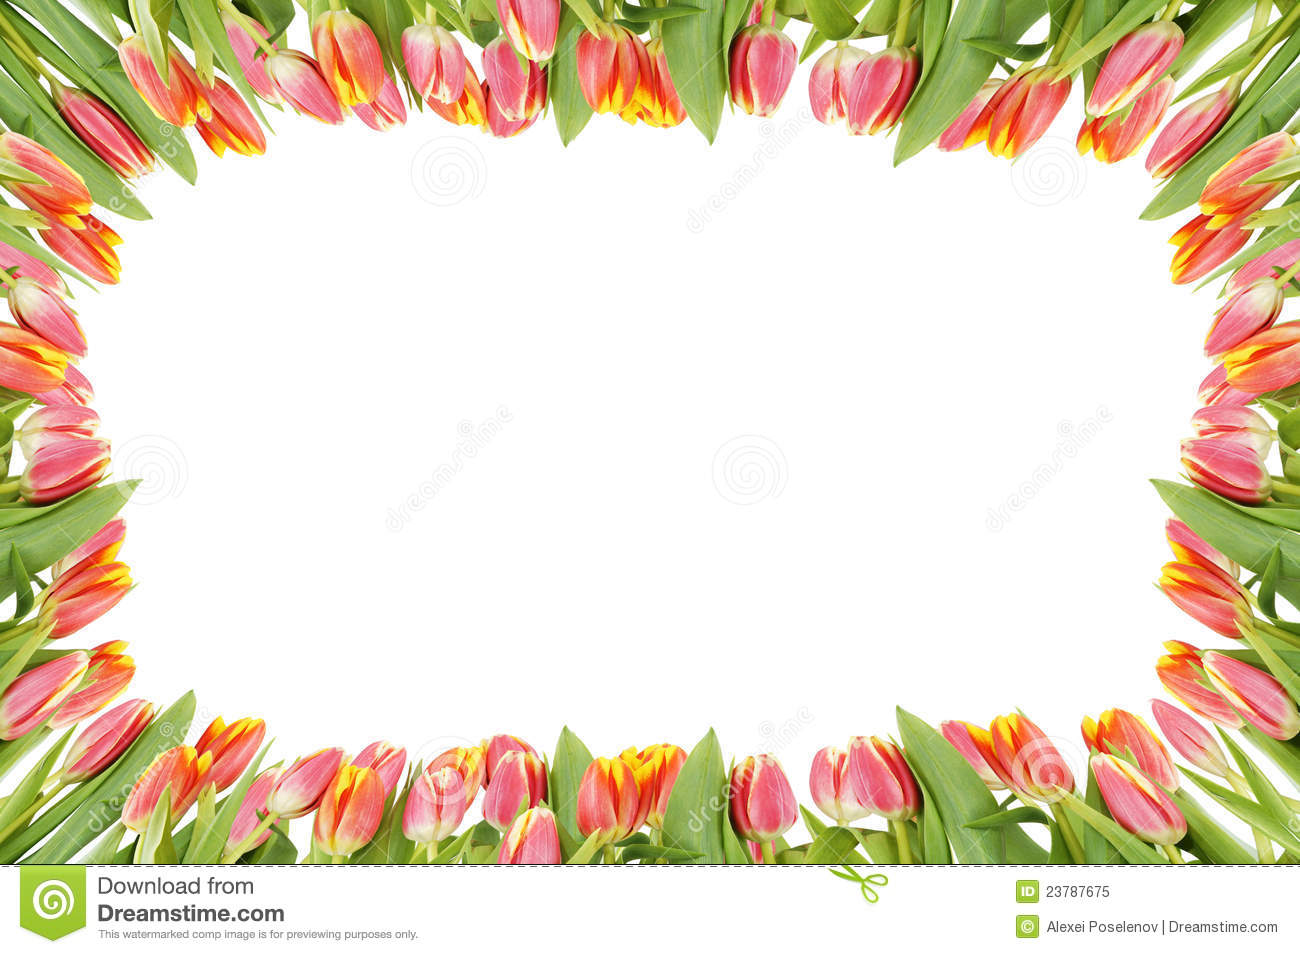 Tulip Flowers Frame Over The White Stock Image - Image of ...Tulips Page Borders Clipart Free